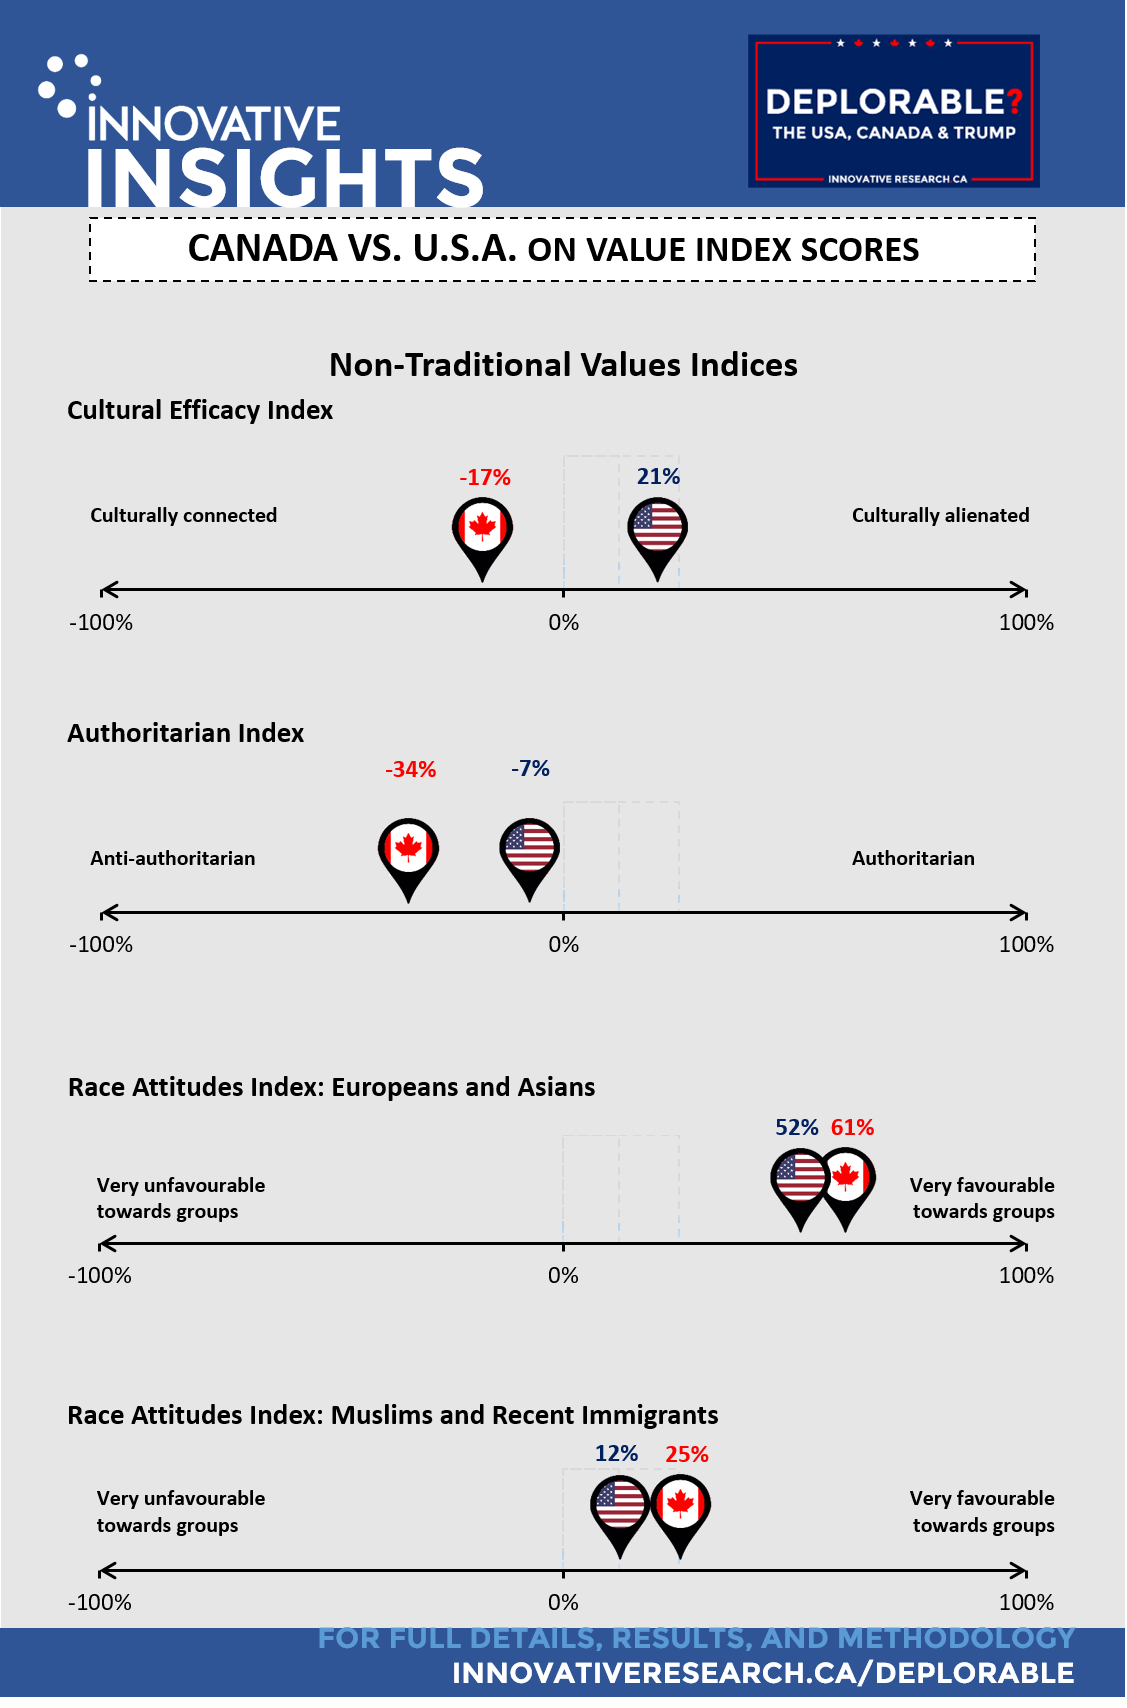 infographic-deplorable-non-traditional-values-indices-rev